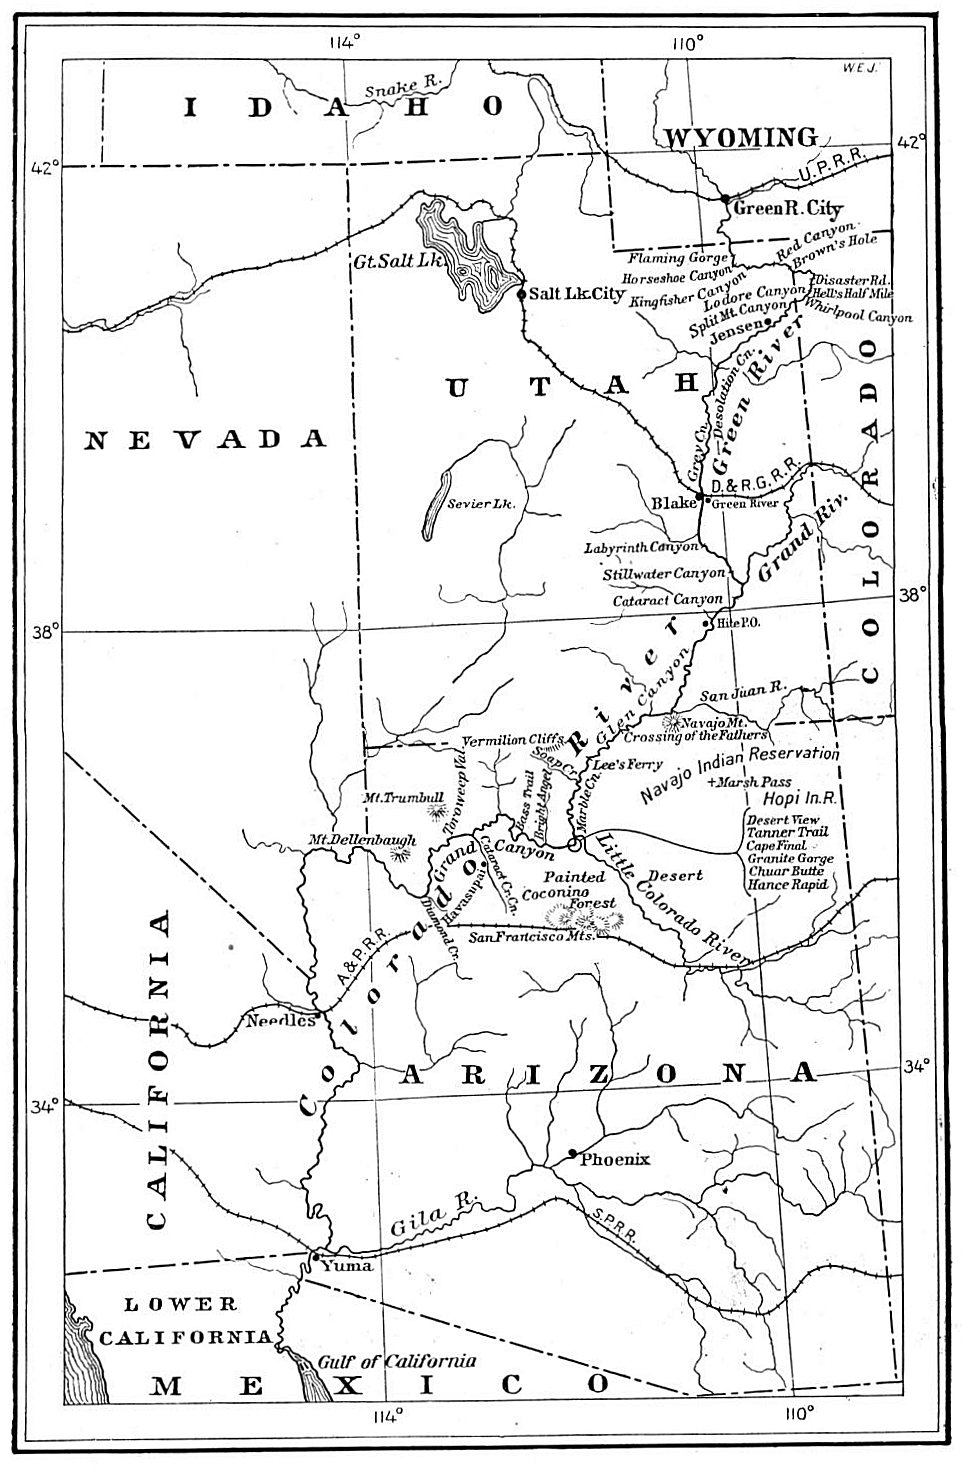 Remediation Plan Diagram moreover Maps furthermore Kofa Inn Parker in addition Mather C ground additionally Geog courses. on us map of colorado river